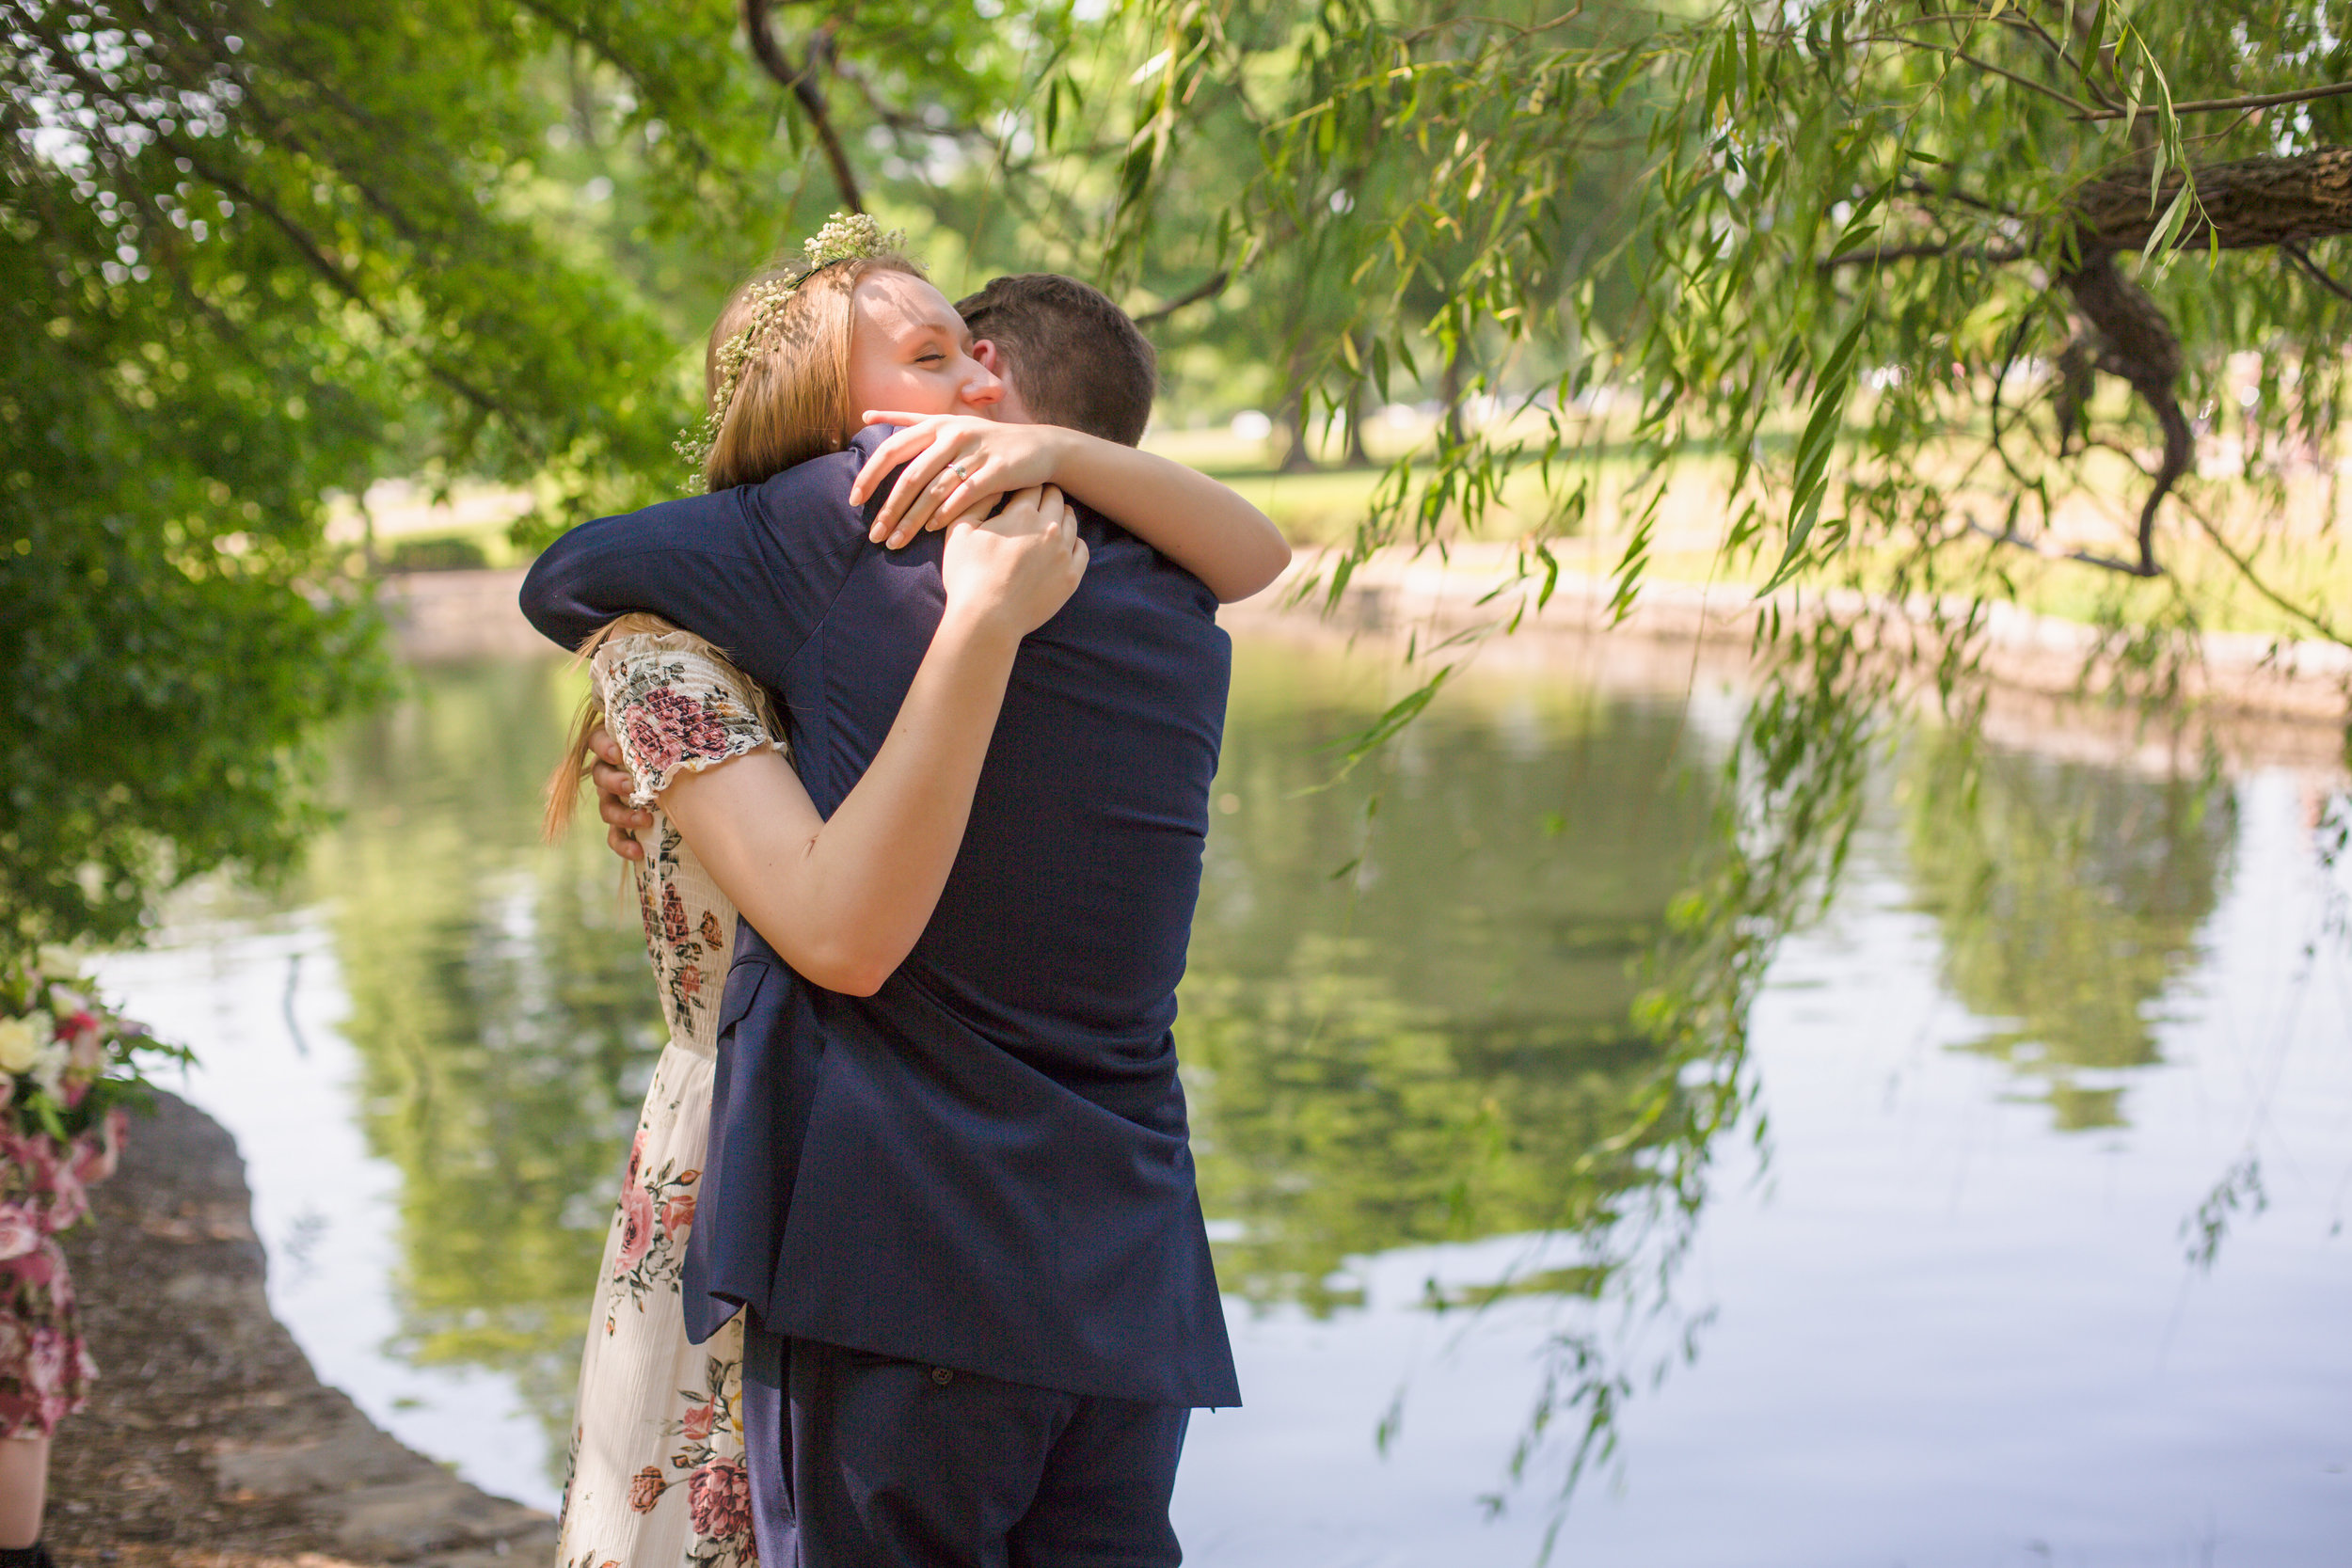 Armstrong Nashville Elopement - Nashville Wedding Photographer - Chelsea Meadows Photography (2).jpg